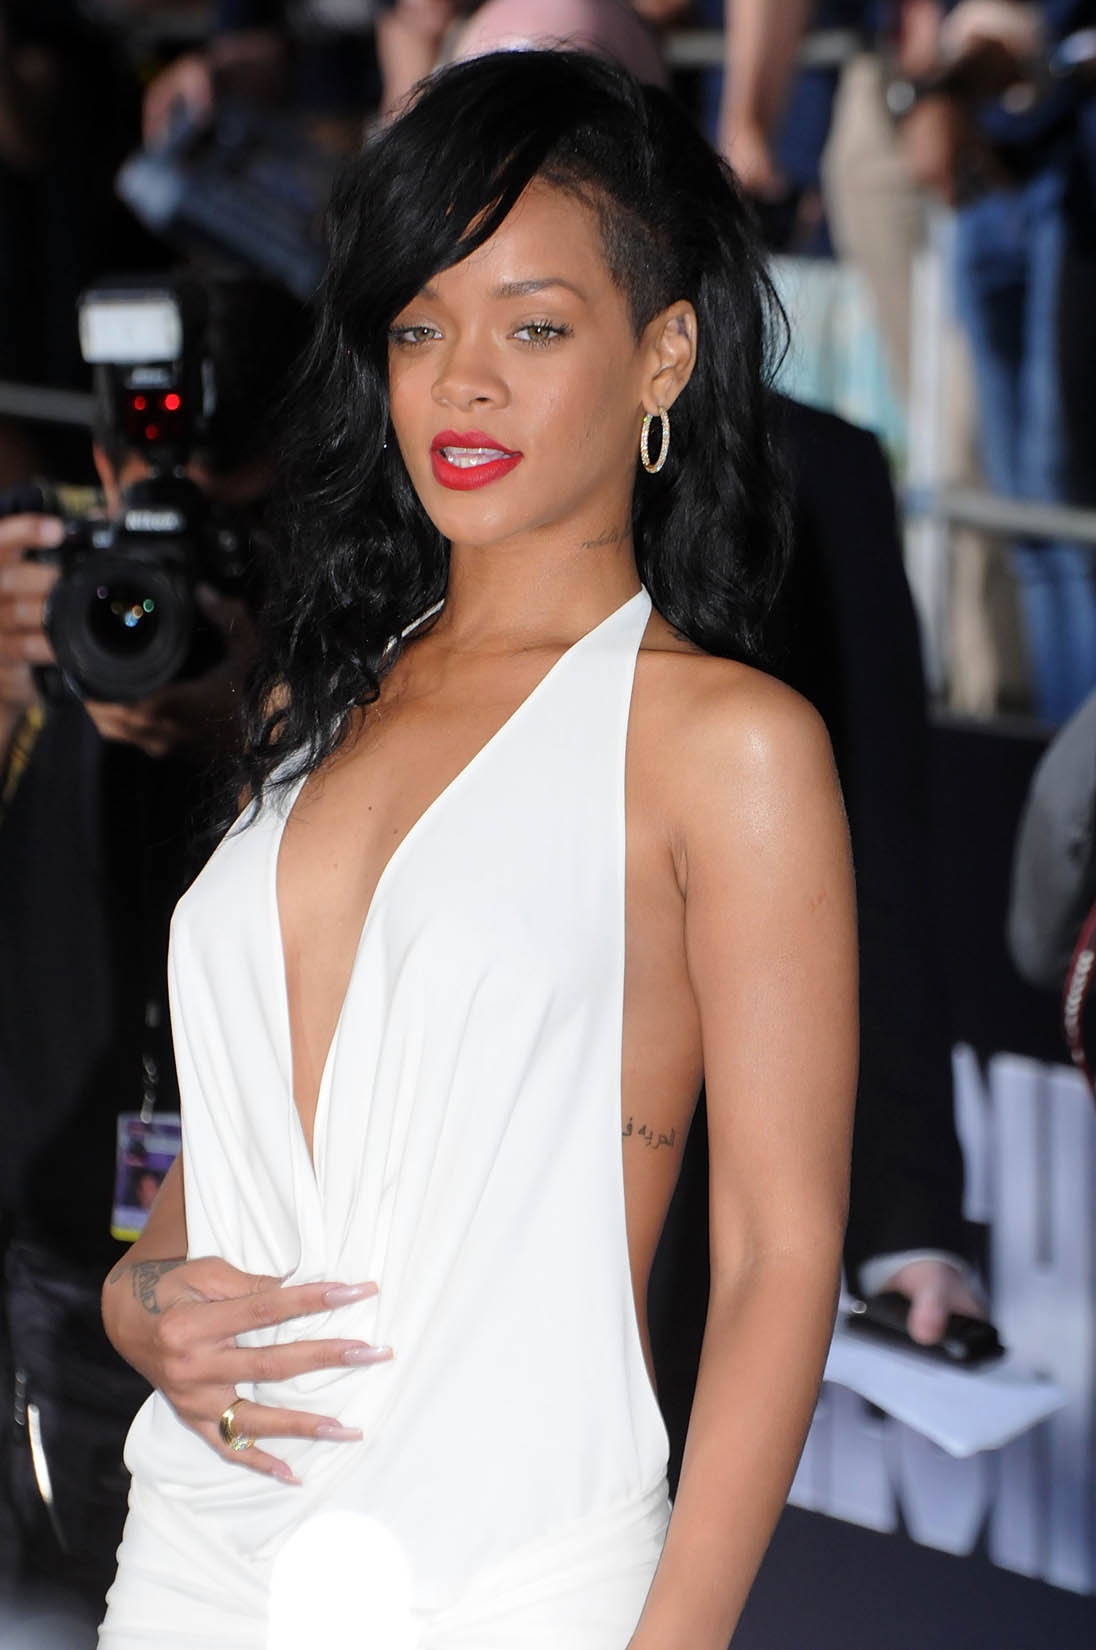 Rihanna Is Pretty Much Naked Right? @ Platinum-celebs.com